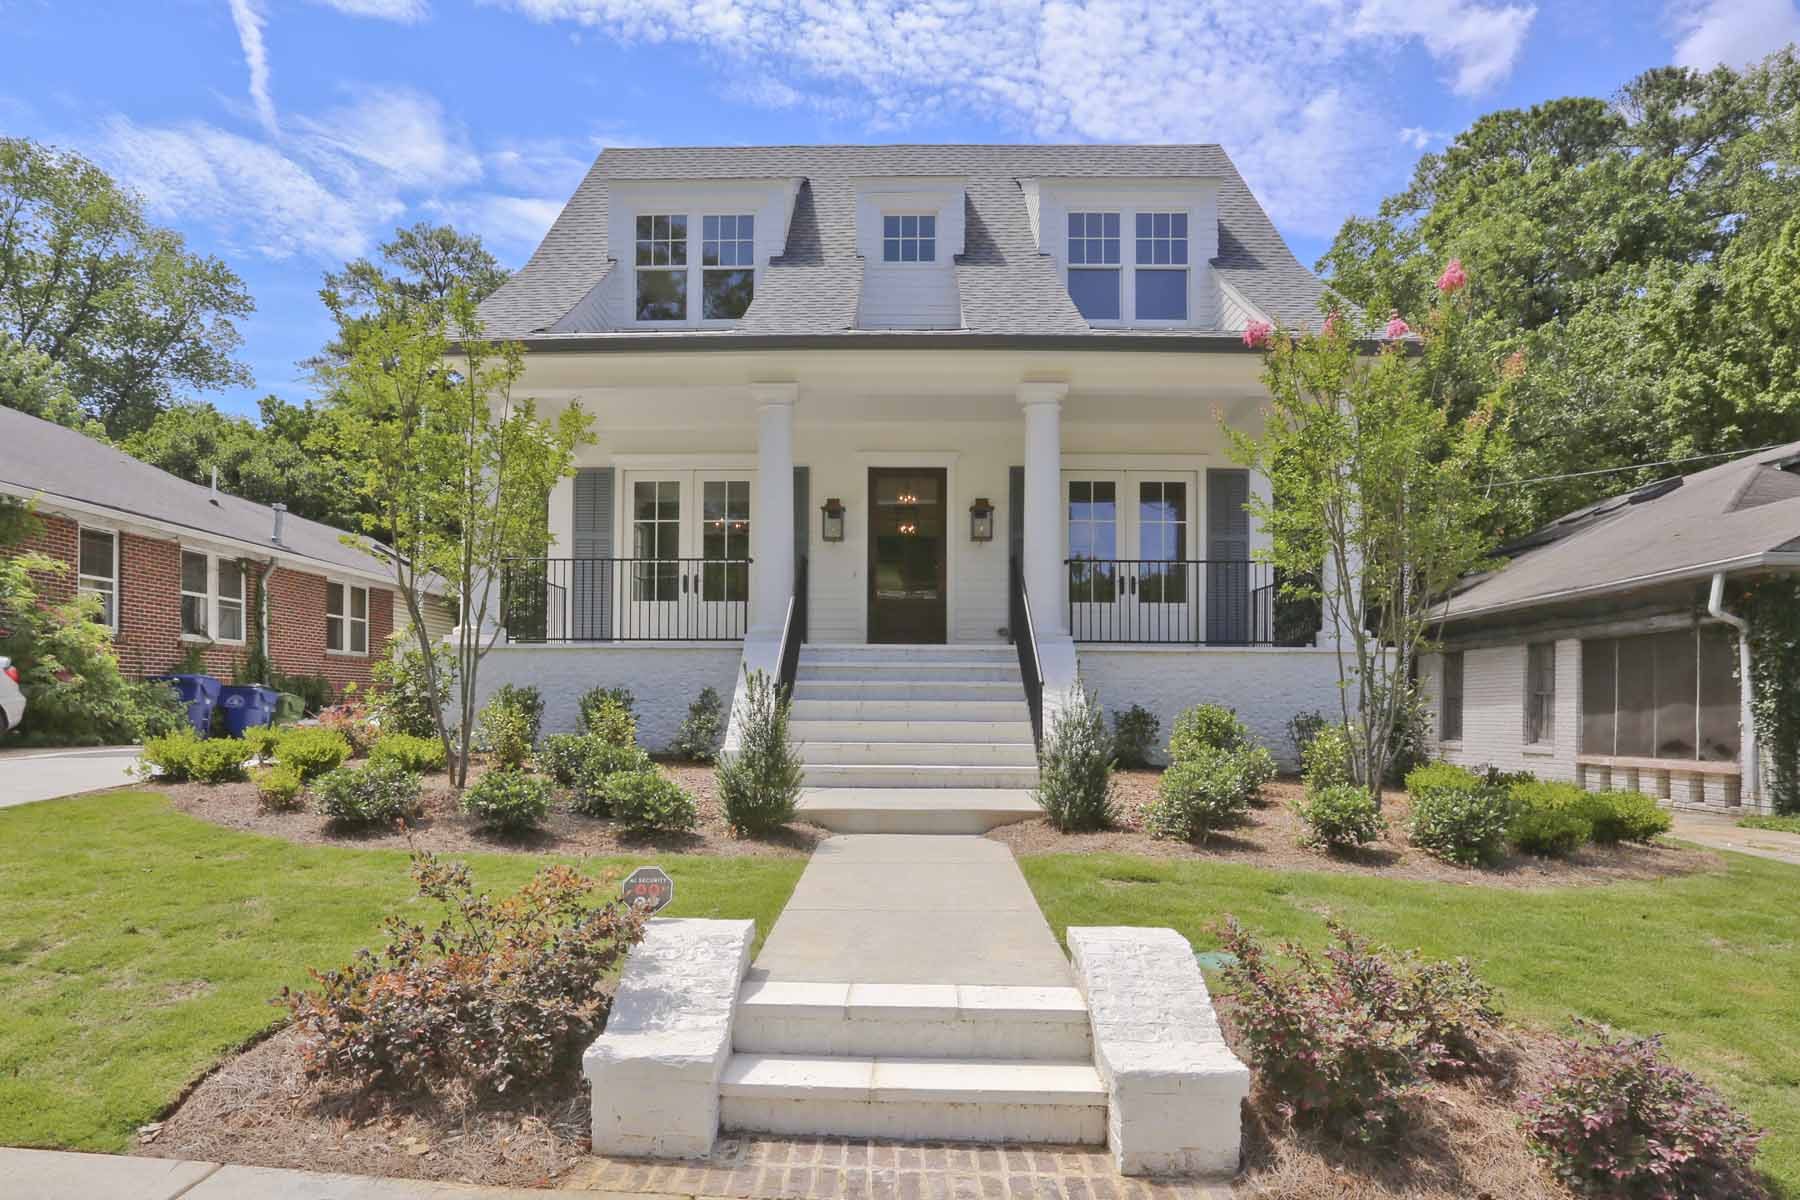 Single Family Home for Sale at Newer Construction in Morningside Close to the BeltLine and Piedmont Park 797 Yorkshire Rd Atlanta, Georgia 30306 United States